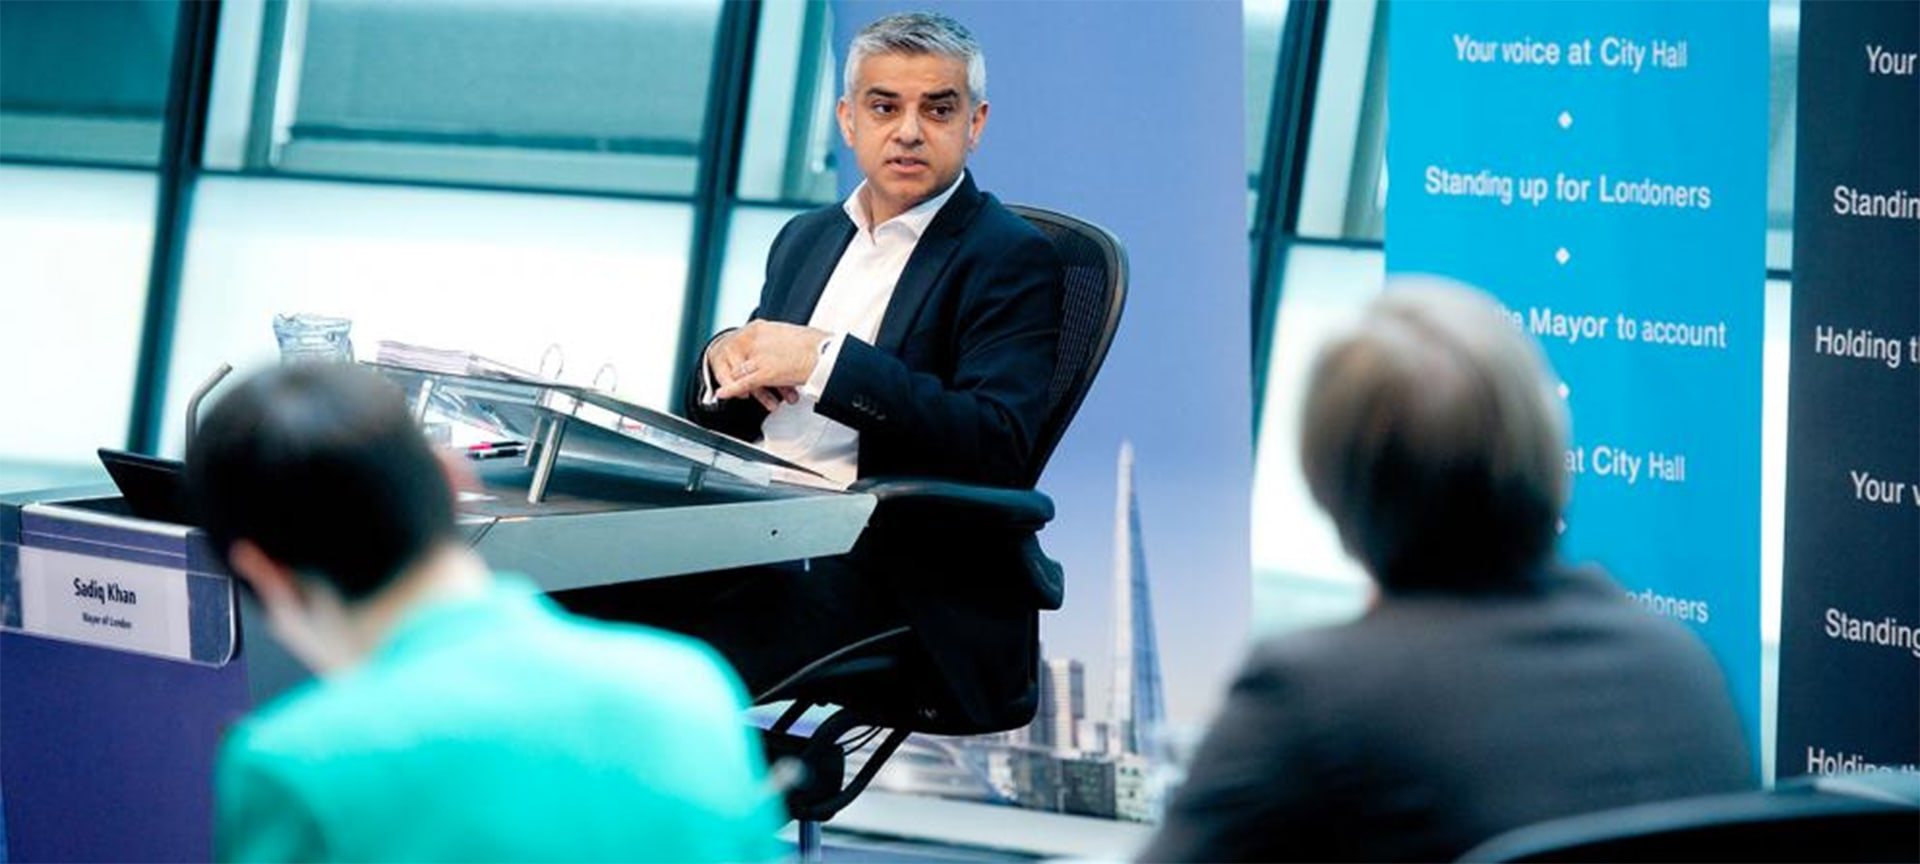 London Assembly meetings are open to the public so Londoners can stay informed about the activities of the Mayor and the Assembly can publicly review their performance.